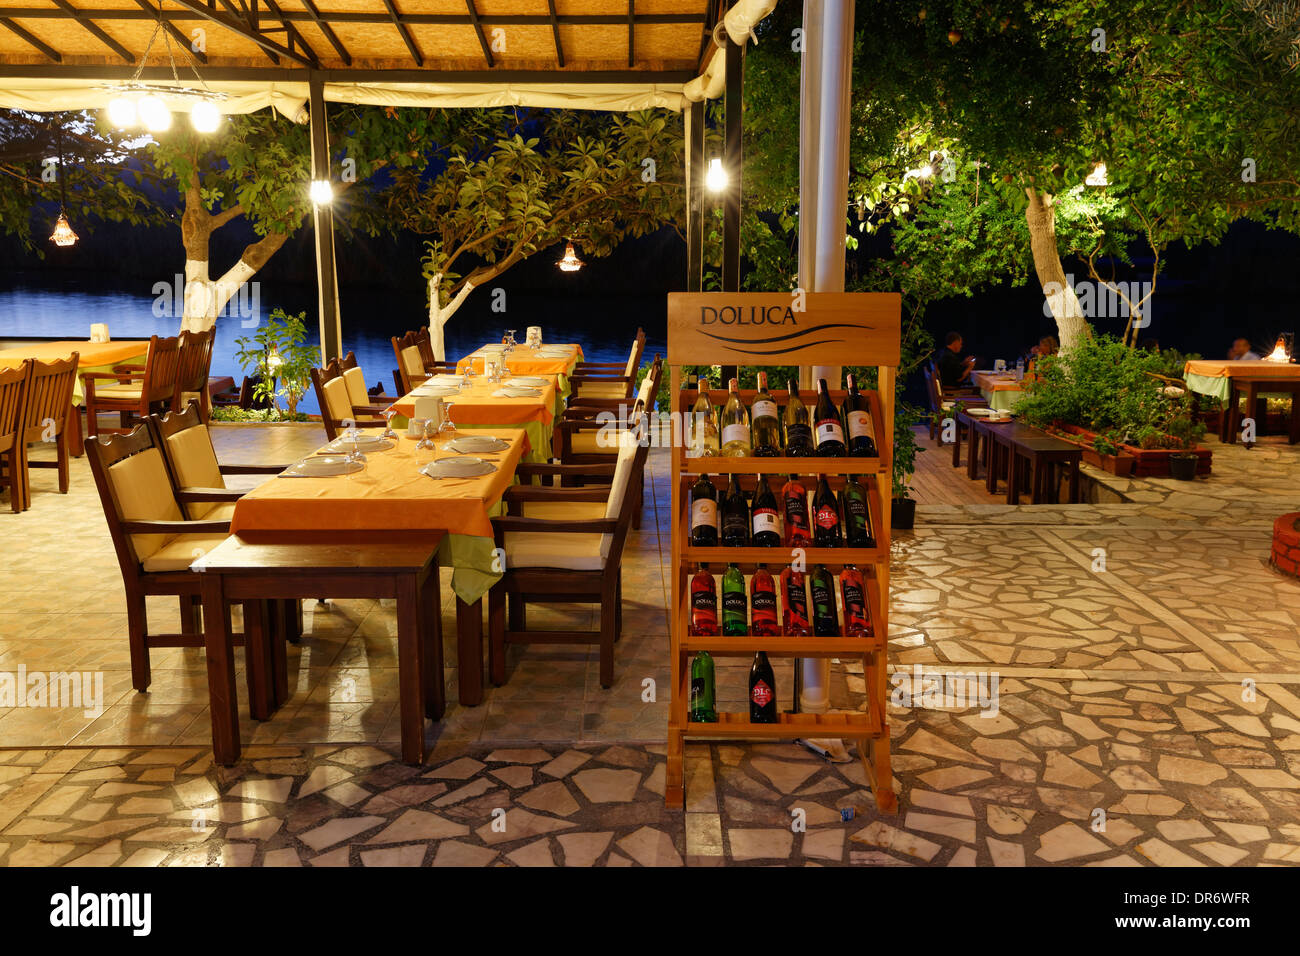 Turkey, Province Mugla, Laid tables in a restaurant at Dalyan River - Stock Image